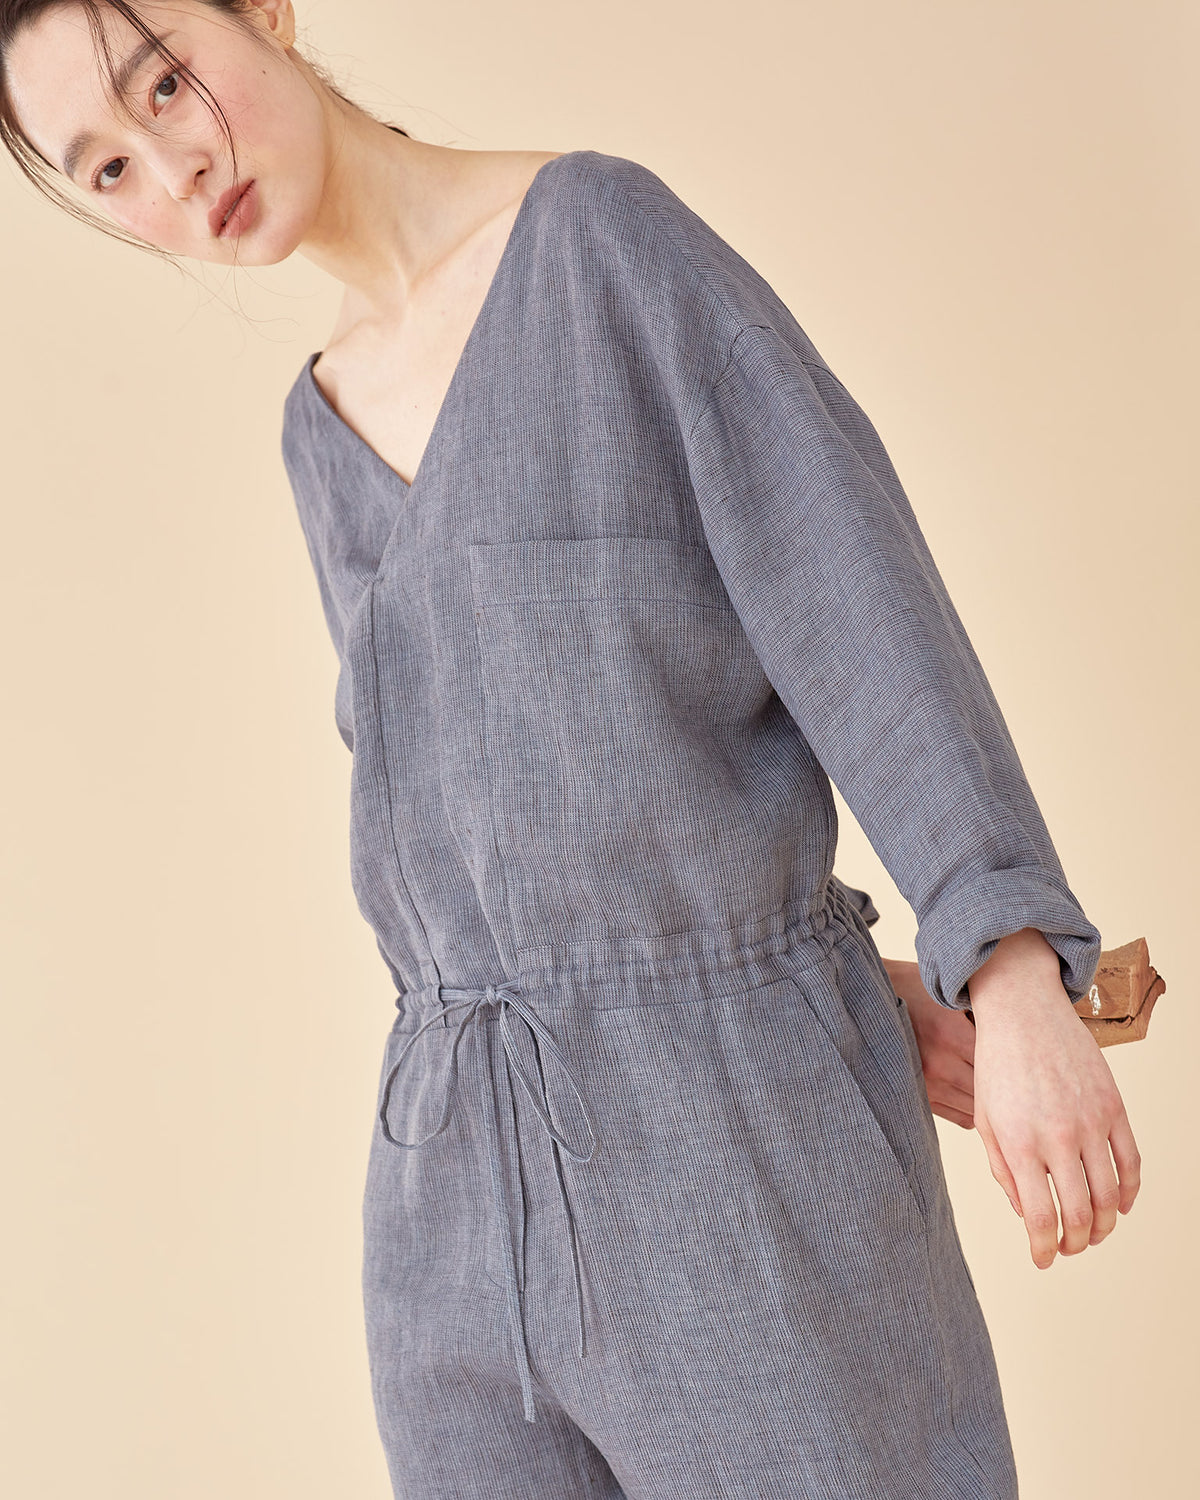 Wood Worker Jumpsuit / Premium linen